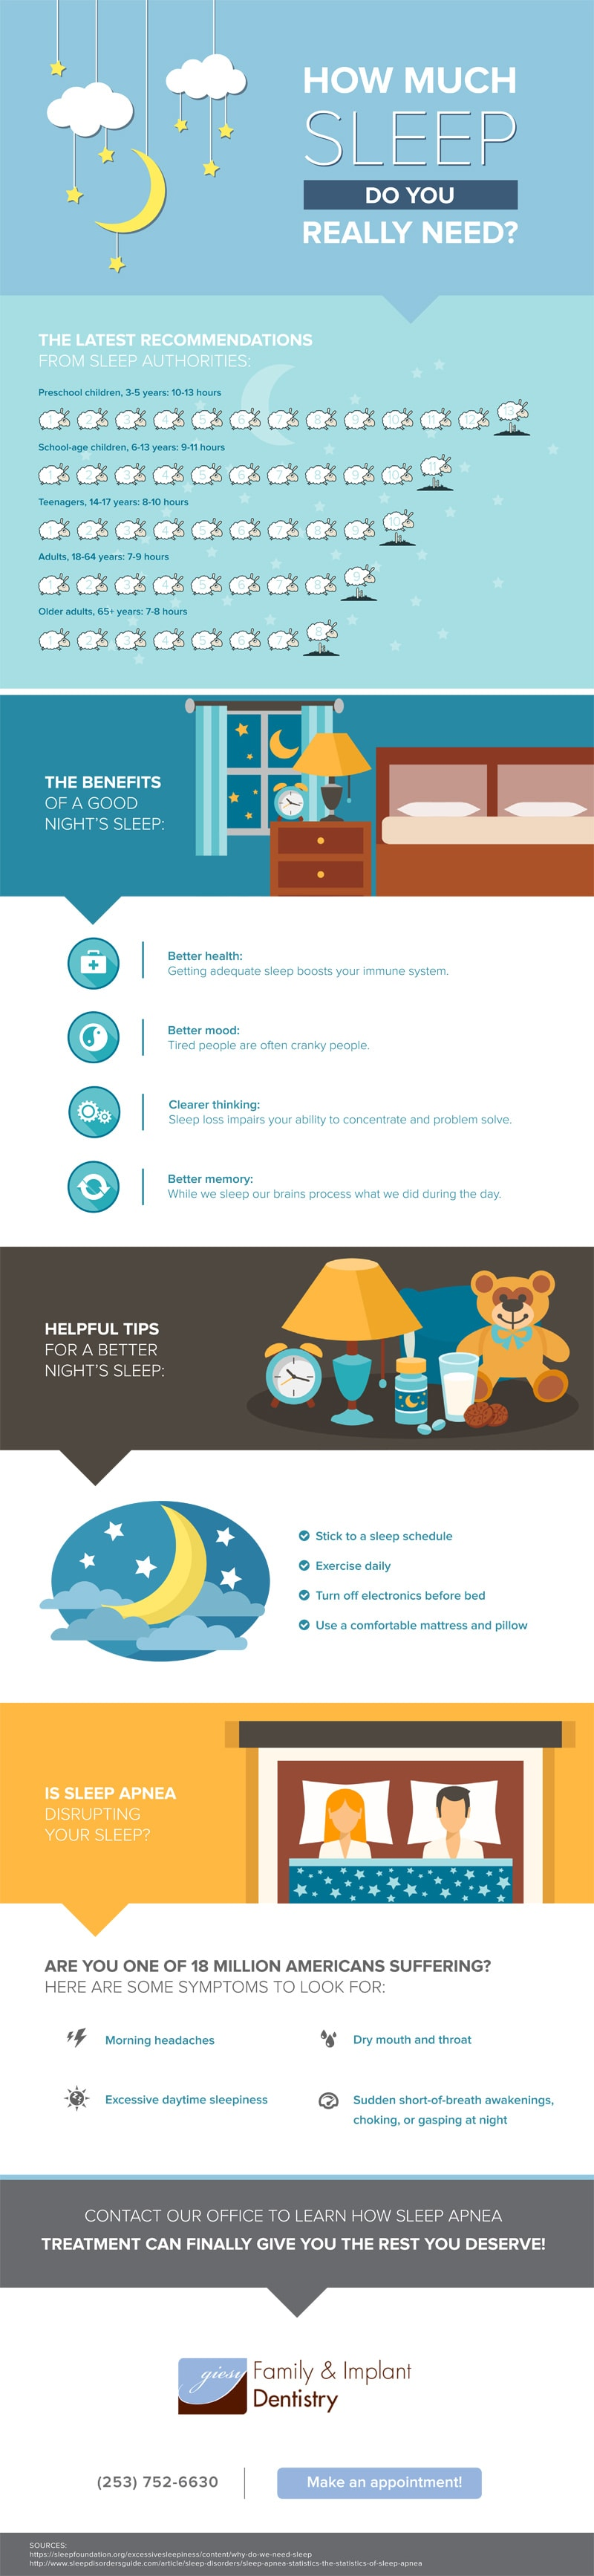 An infographic that indicates how much sleep a person needs and tips for getting restful sleep.